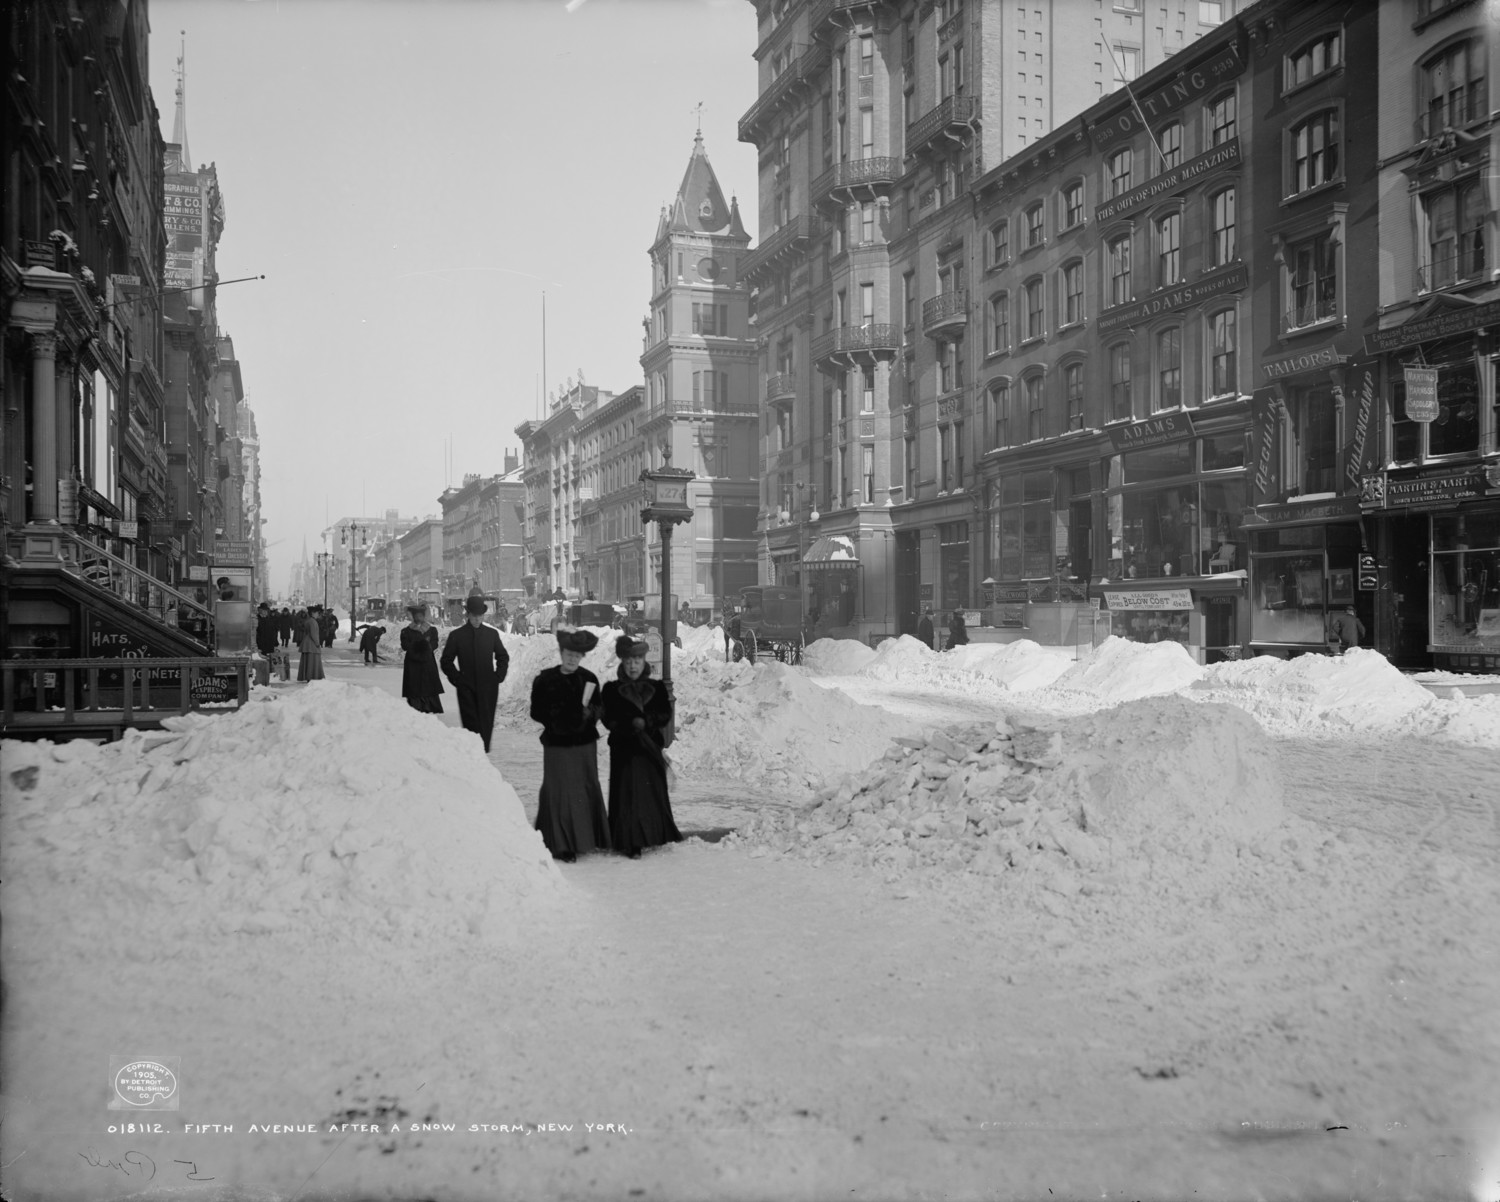 1905 Fifth Avenue & 27th Street after a big storm photo Detroit Publishing